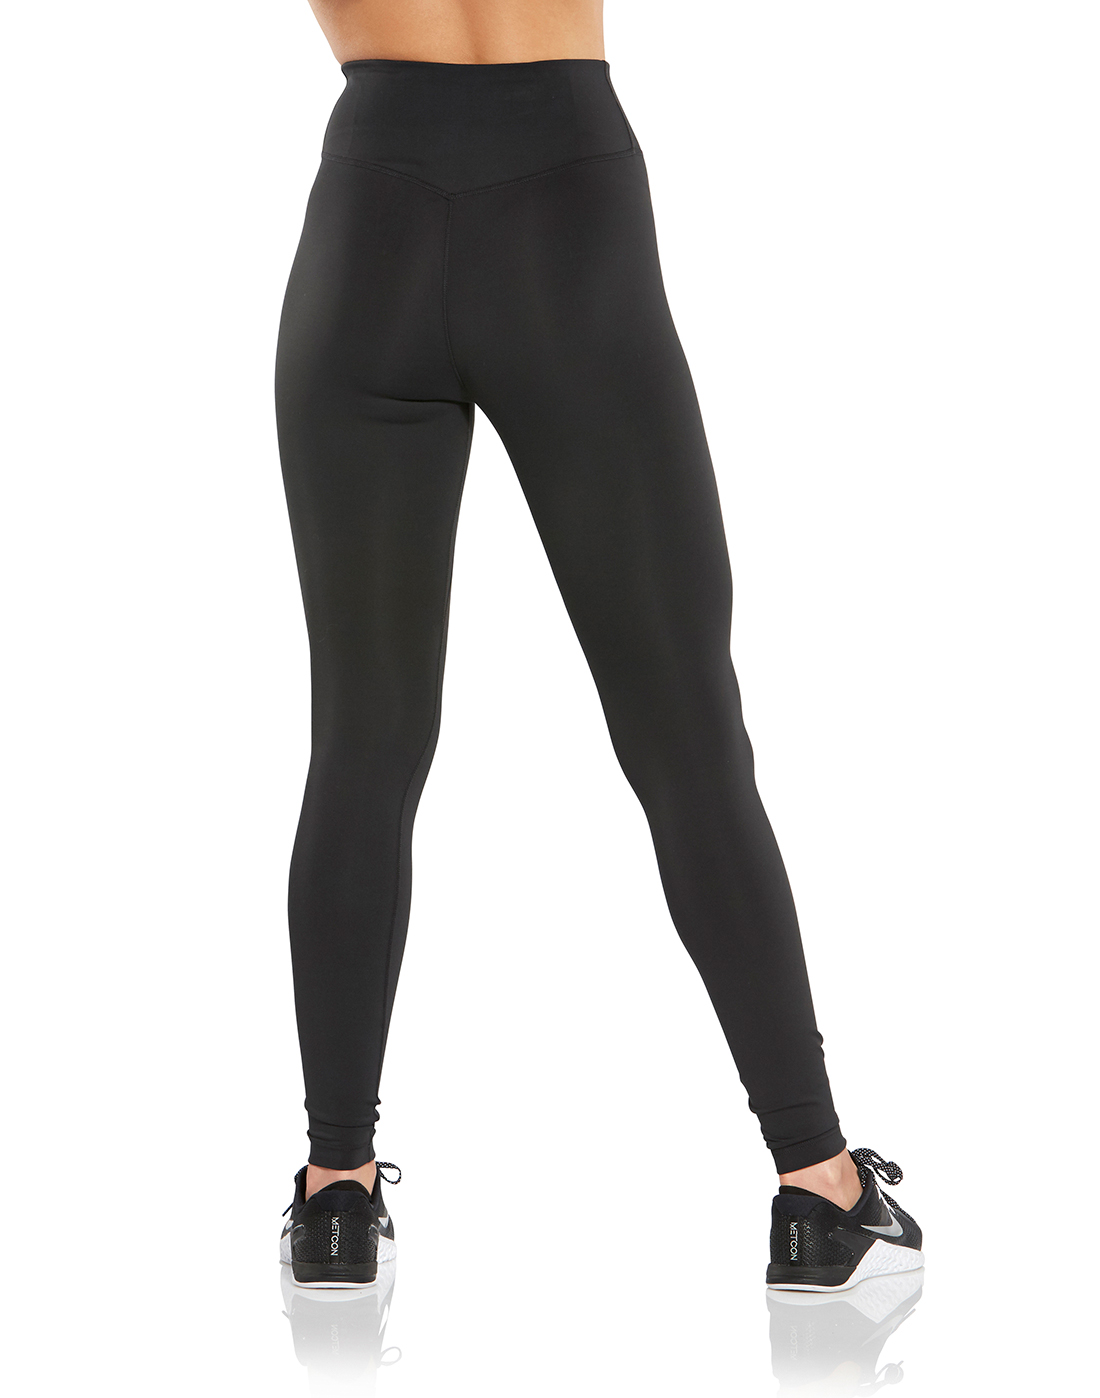 American German Flag 4 Way Stretch High Rise Fit Compression Workout Leggings for Women